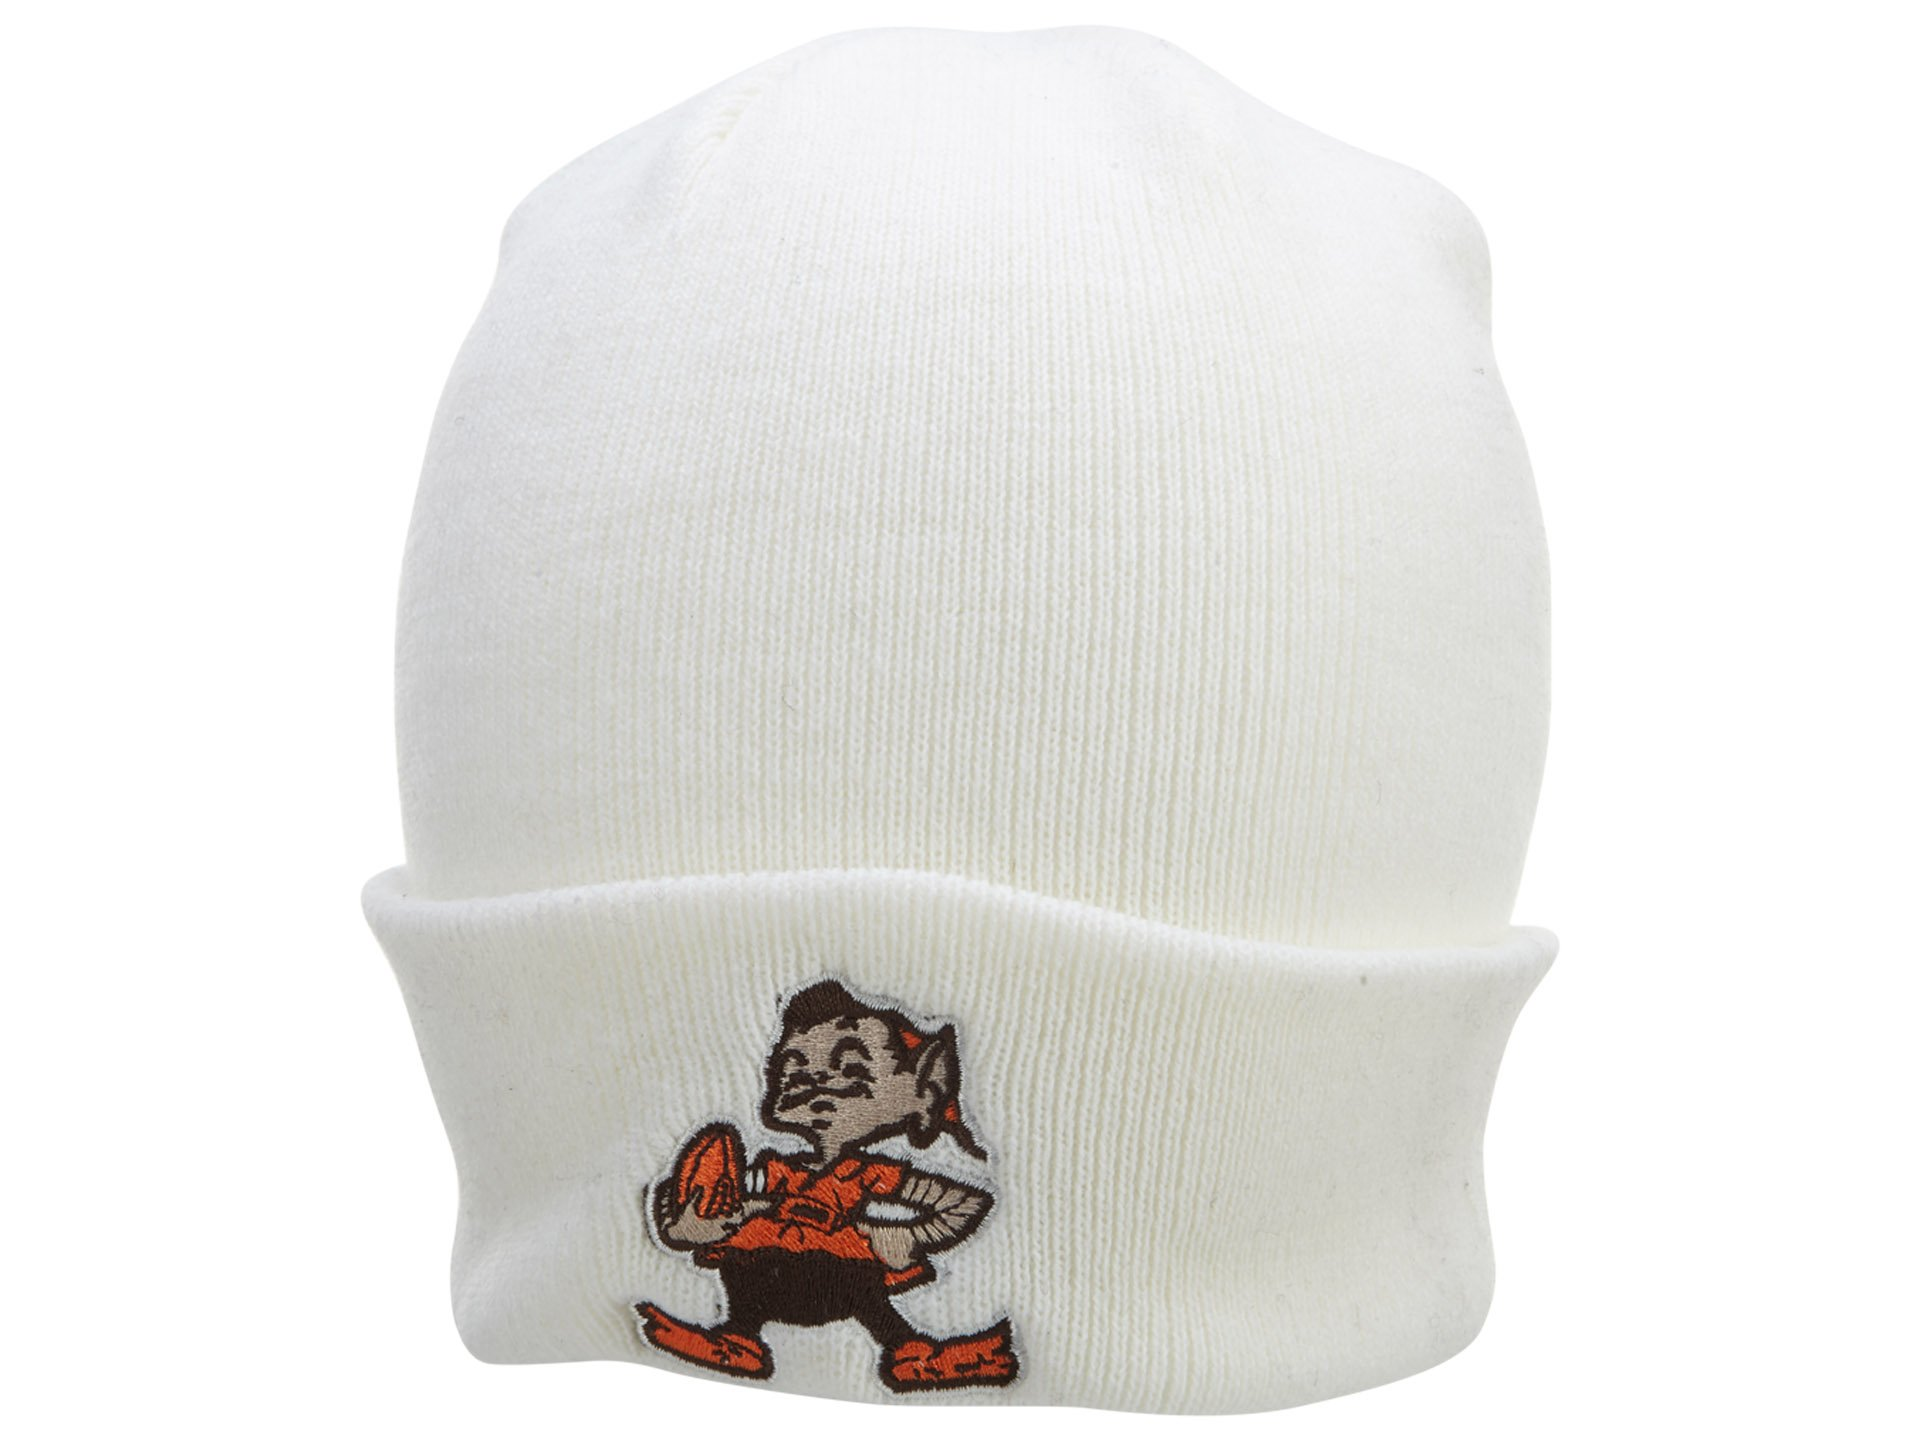 NFL End Zone Cuffed Knit Hat - K010Z, Cleveland Browns, One Size Fits All